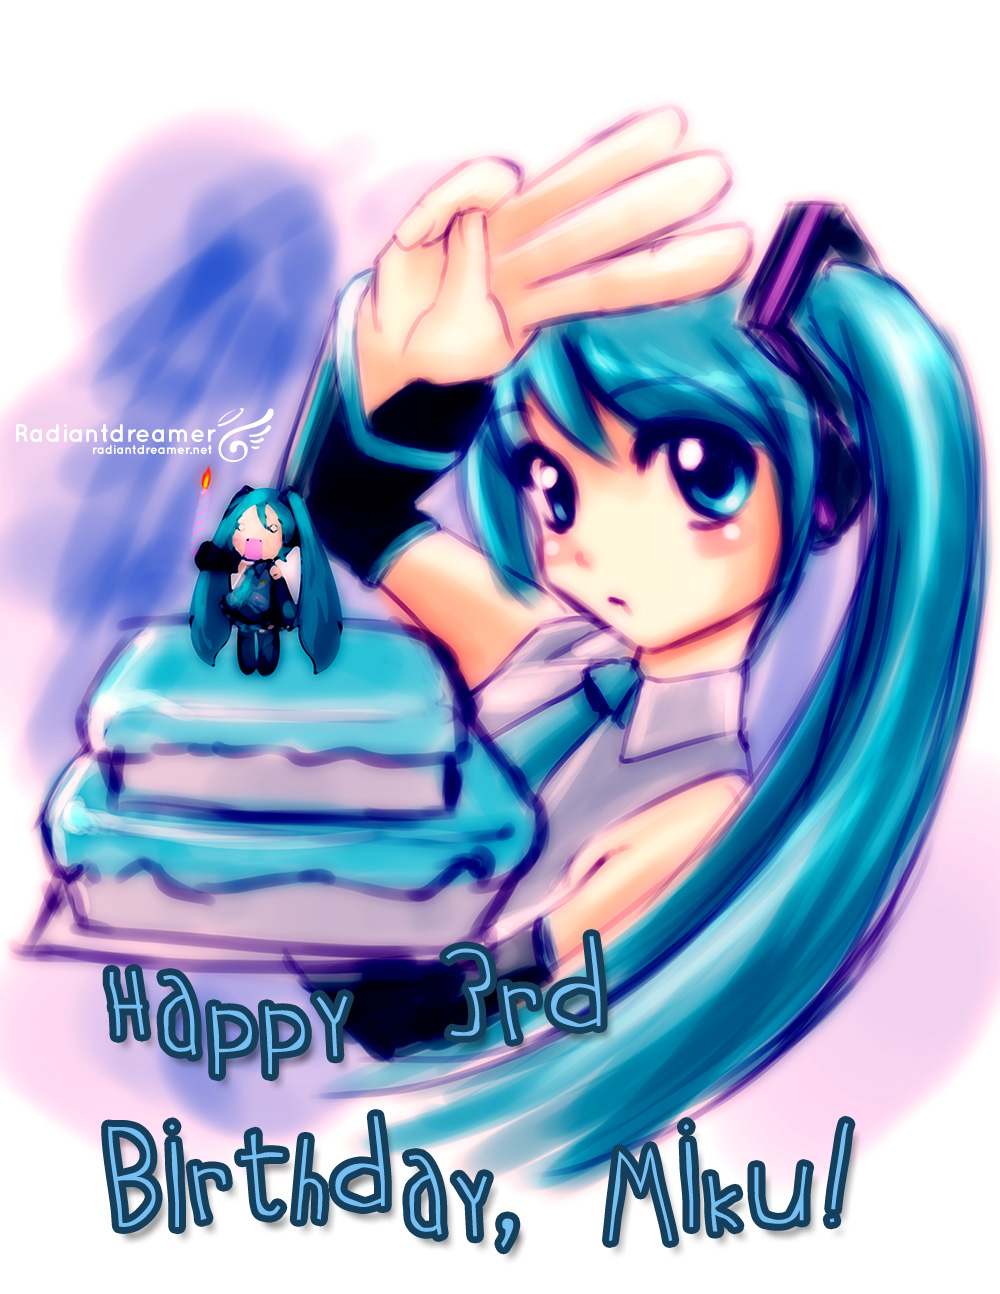 3rdbirthdaymiku Happy Birthday Miku!